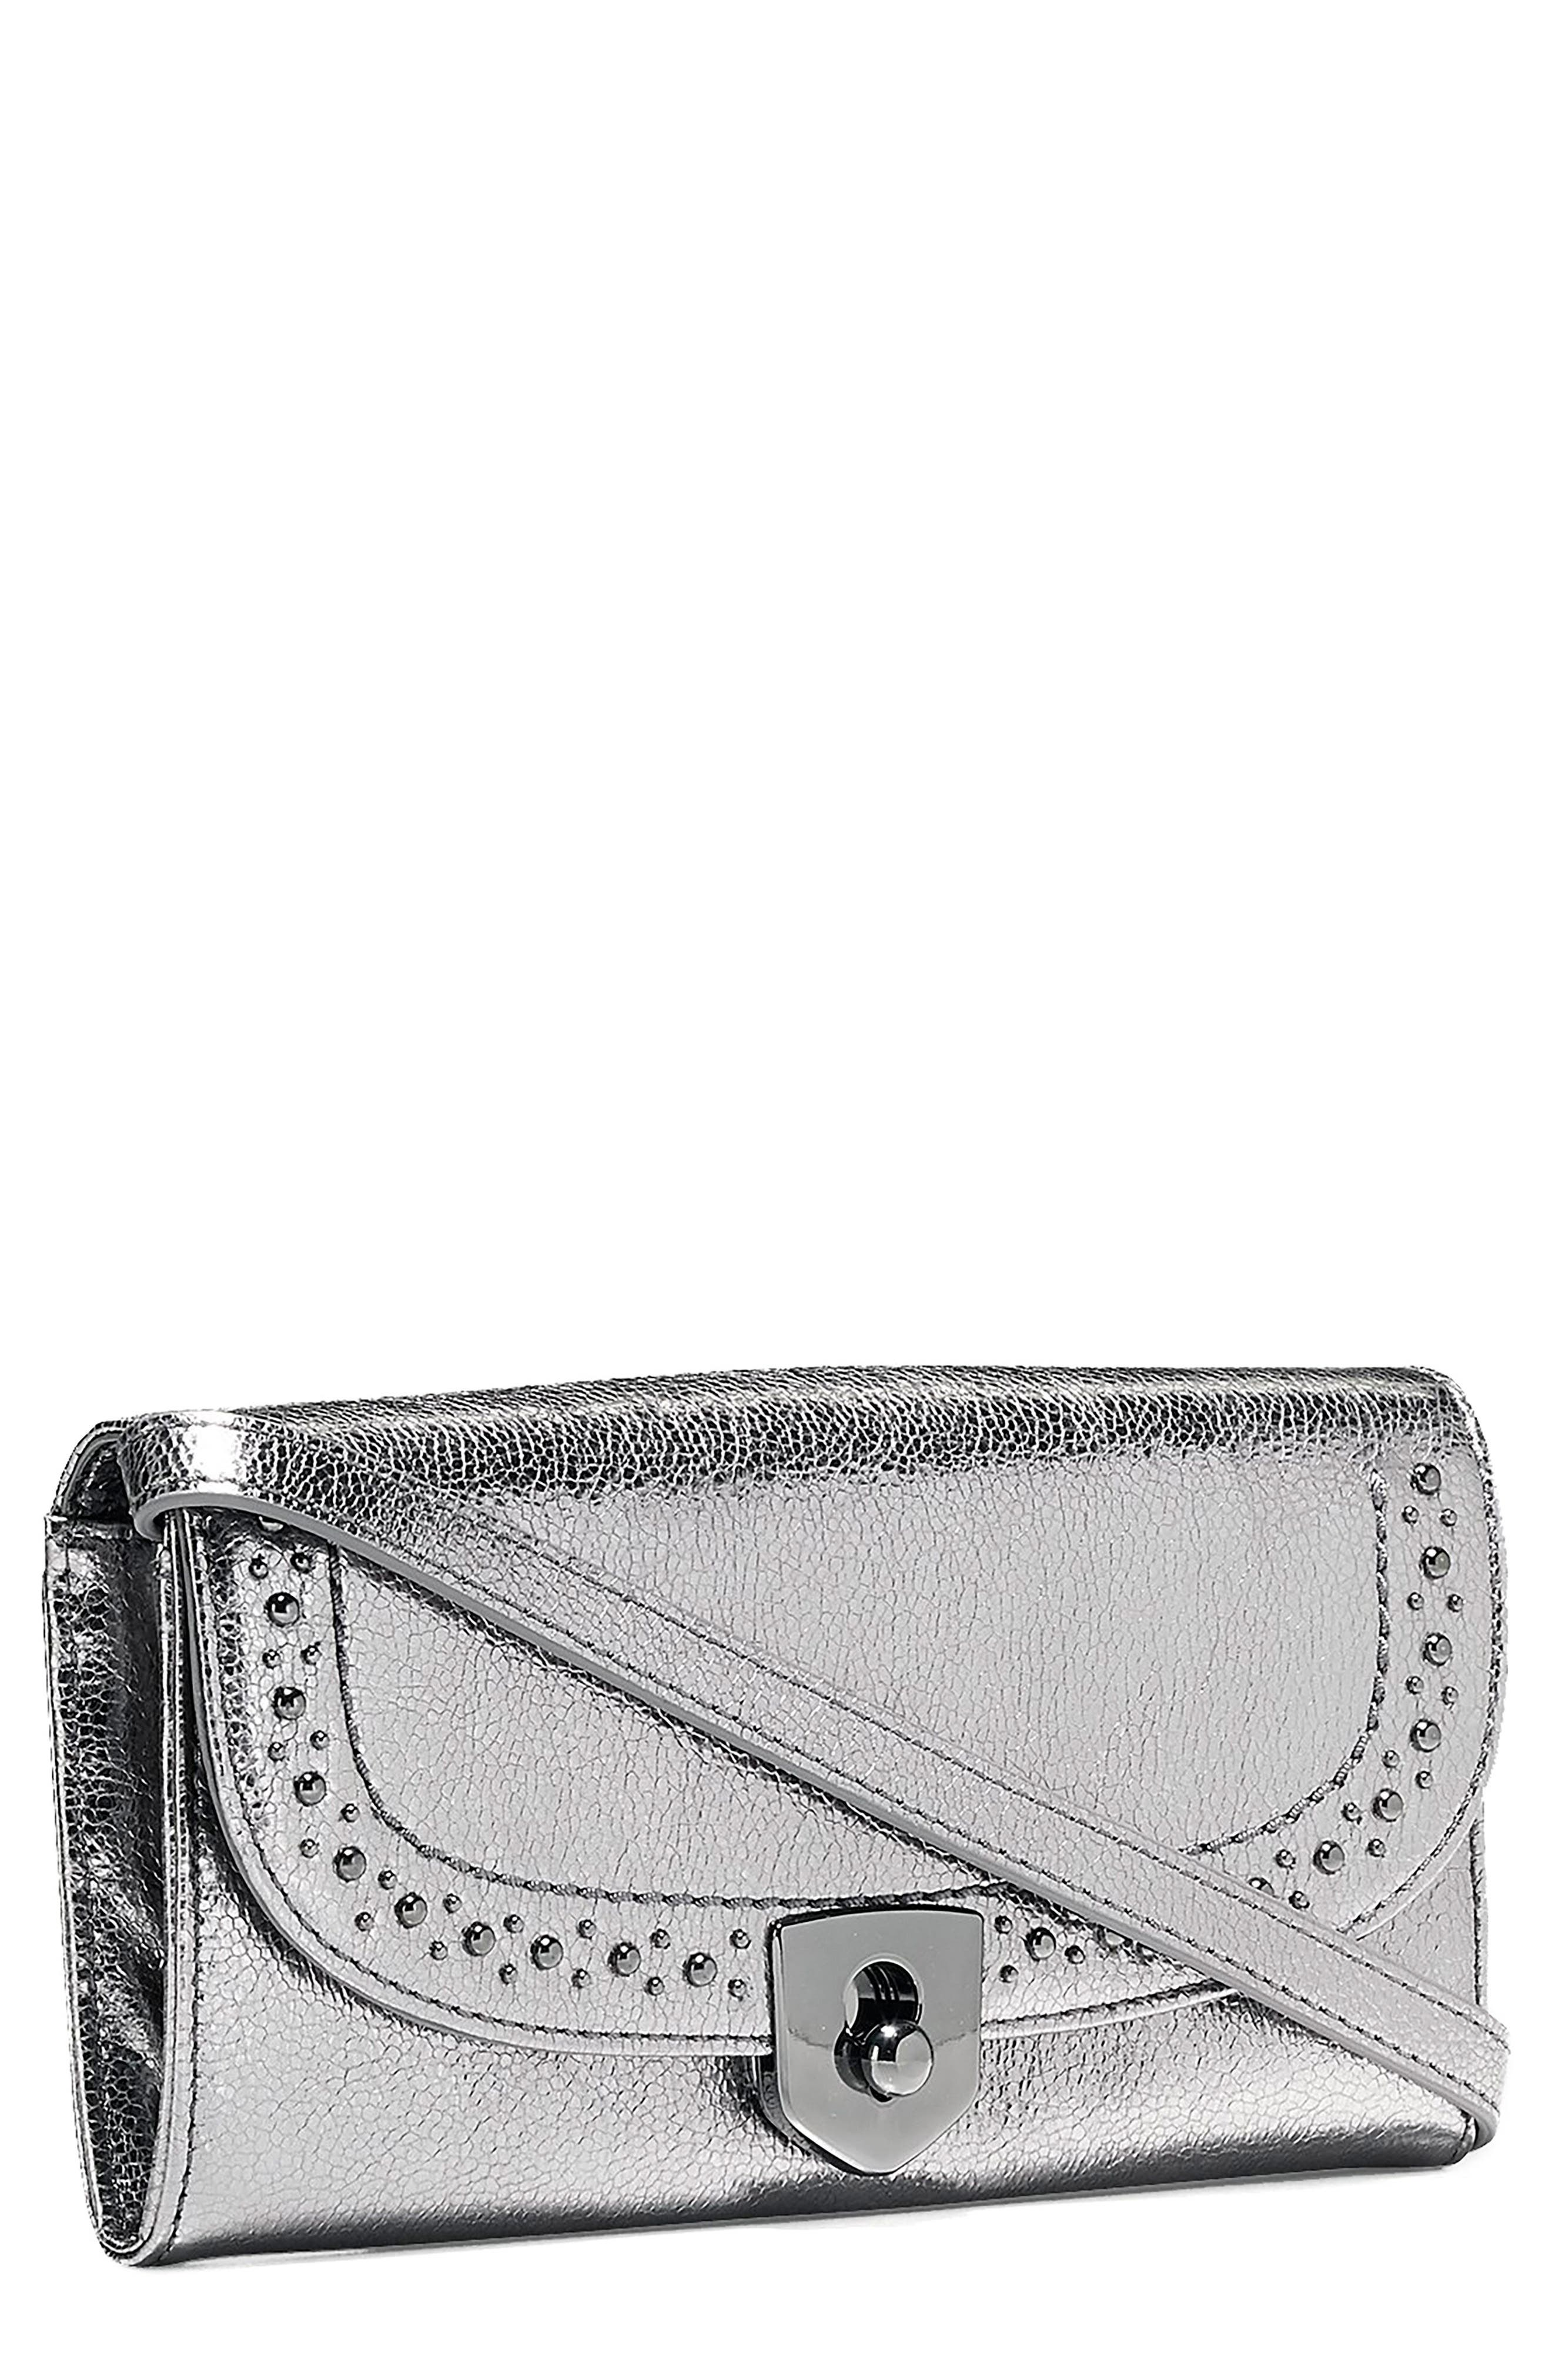 Marli Studded Metallic Leather Convertible Smartphone Clutch,                             Main thumbnail 1, color,                             Anthracite